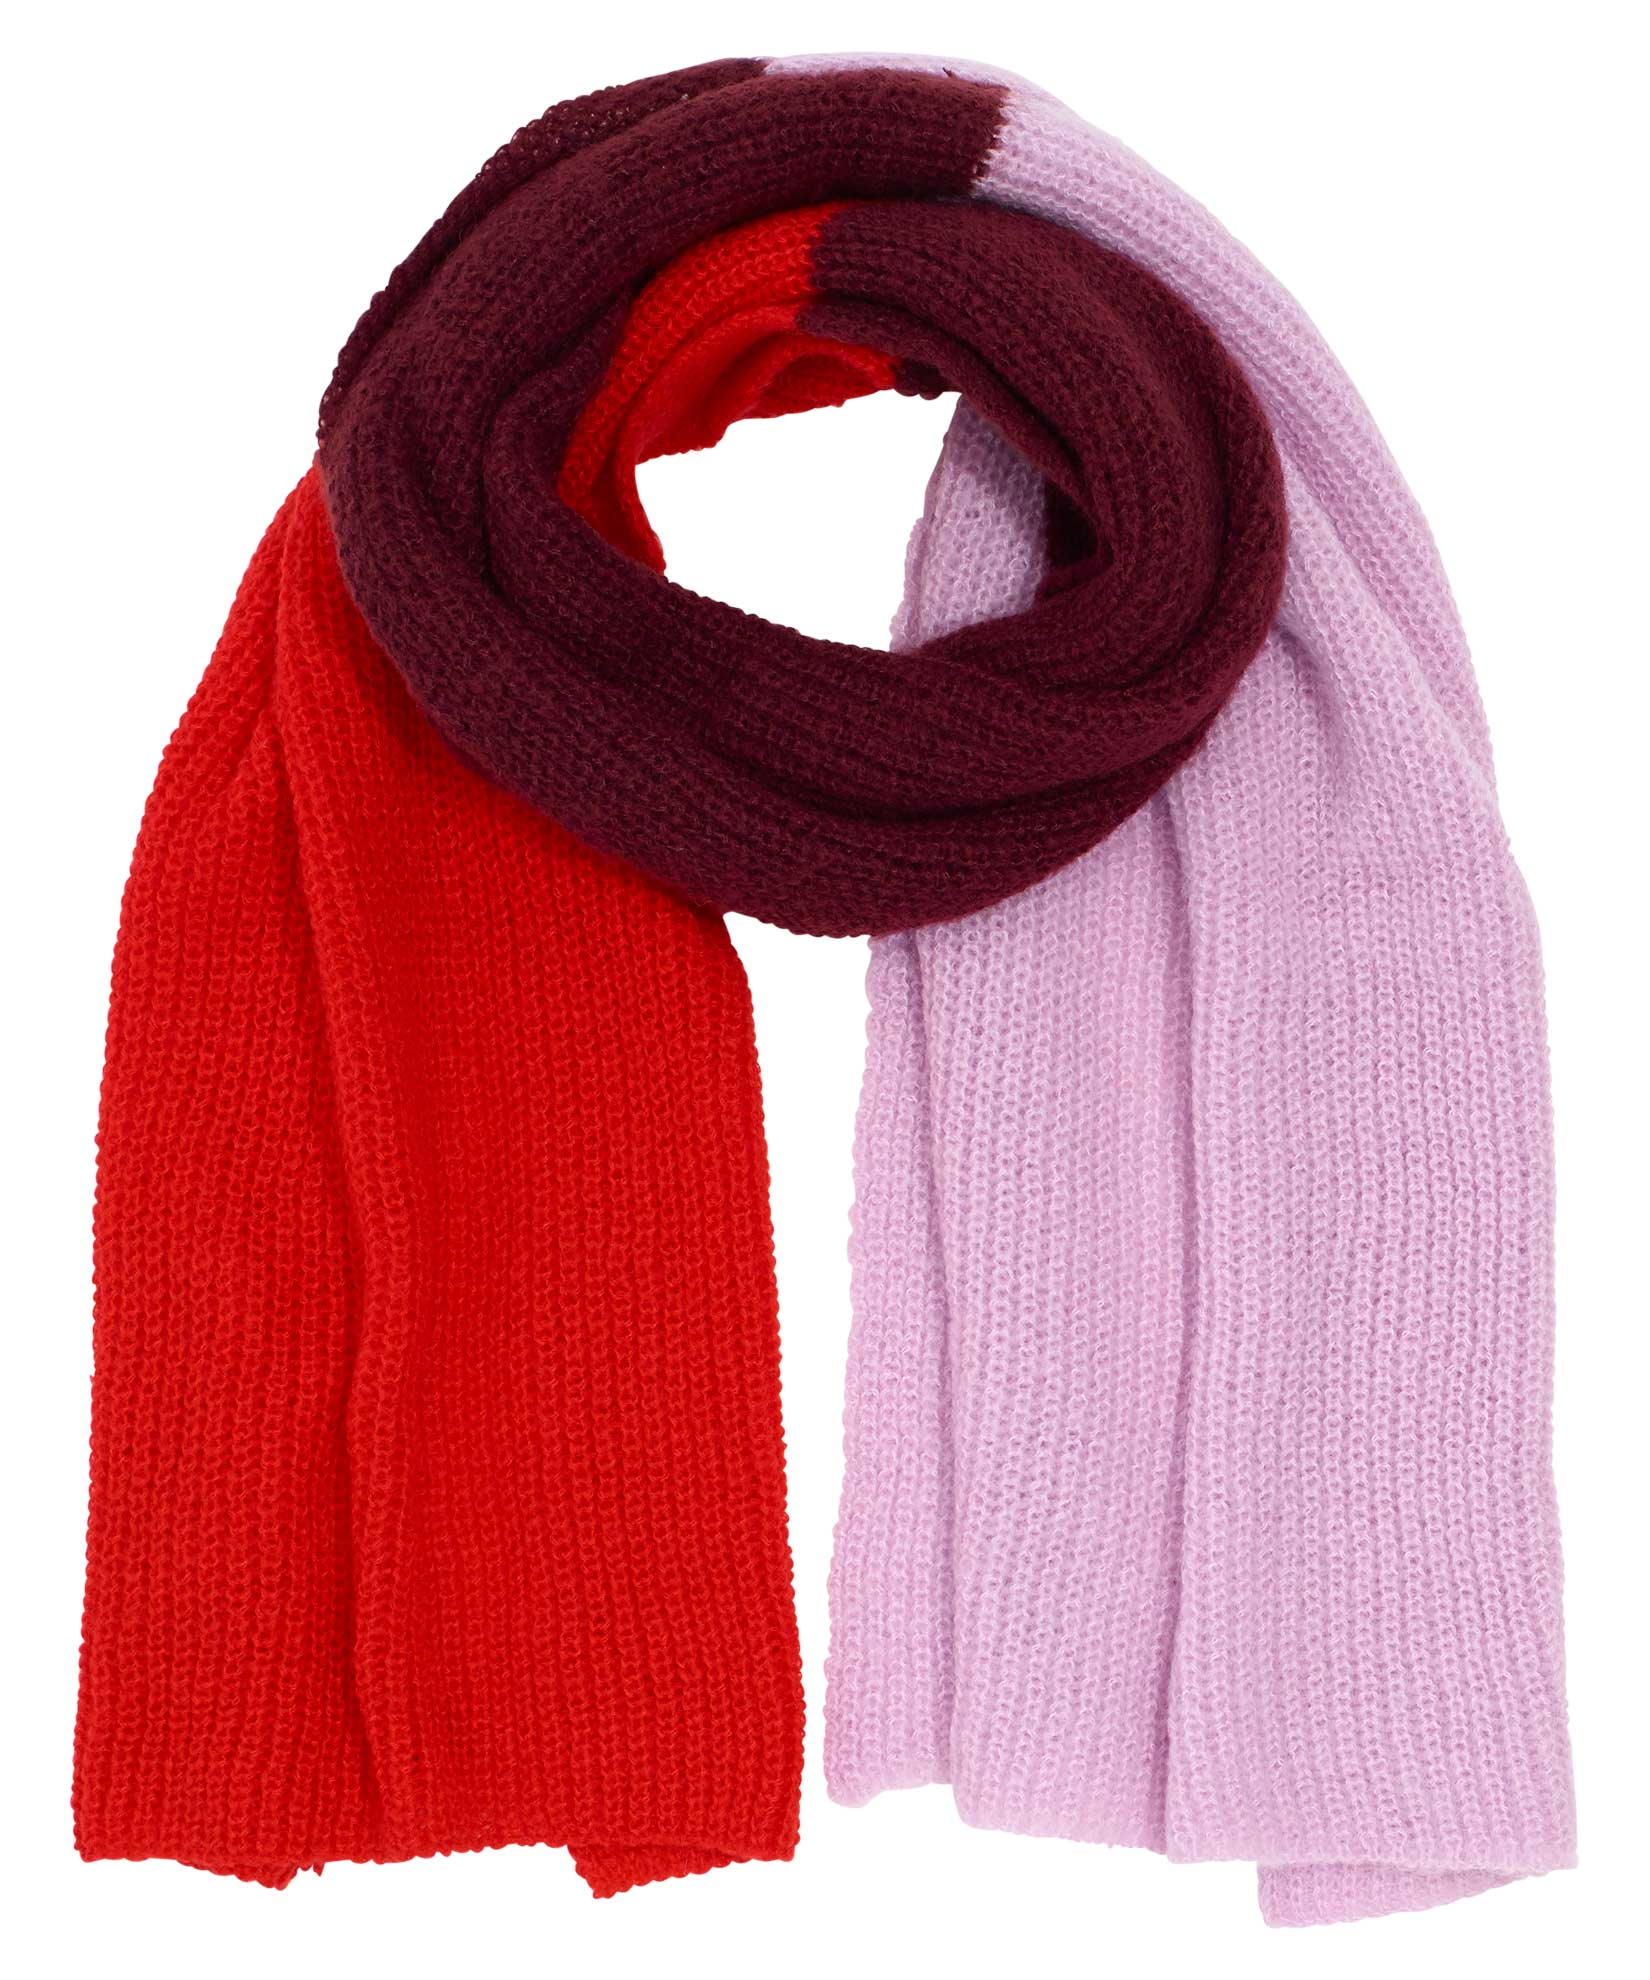 Garnet - Brushed Triple Block Scarf